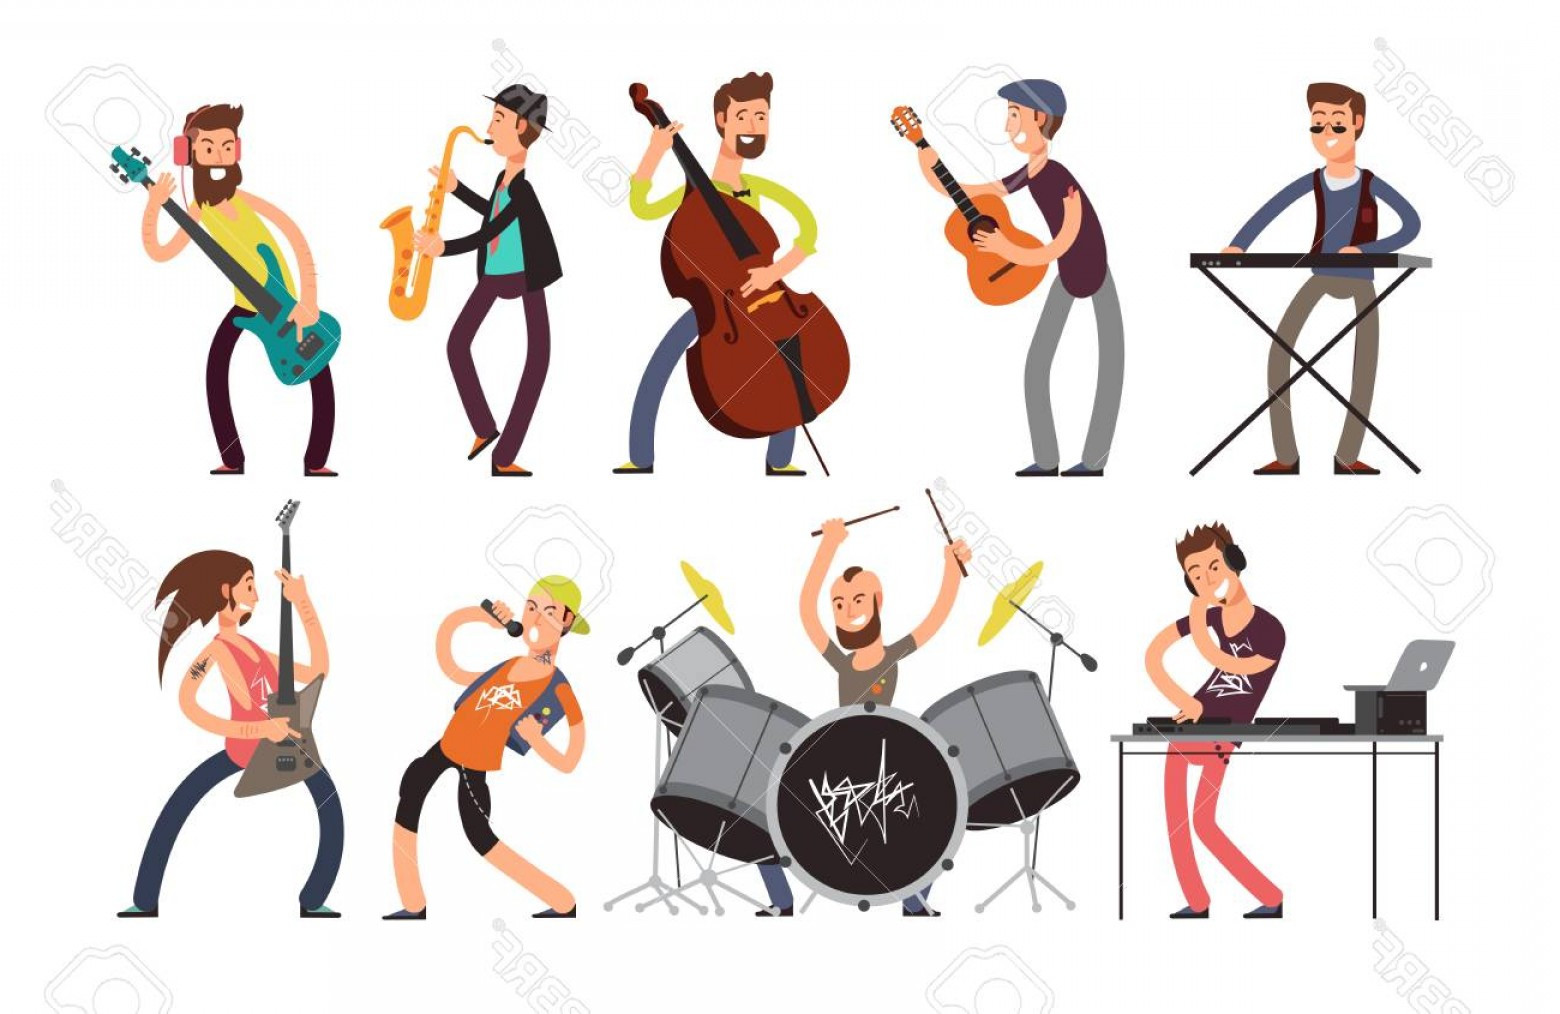 Musician Person Vector: Photostock Vector Rock N Roll Music Band Vector Characters With Musical Instruments Musicians Playing Music